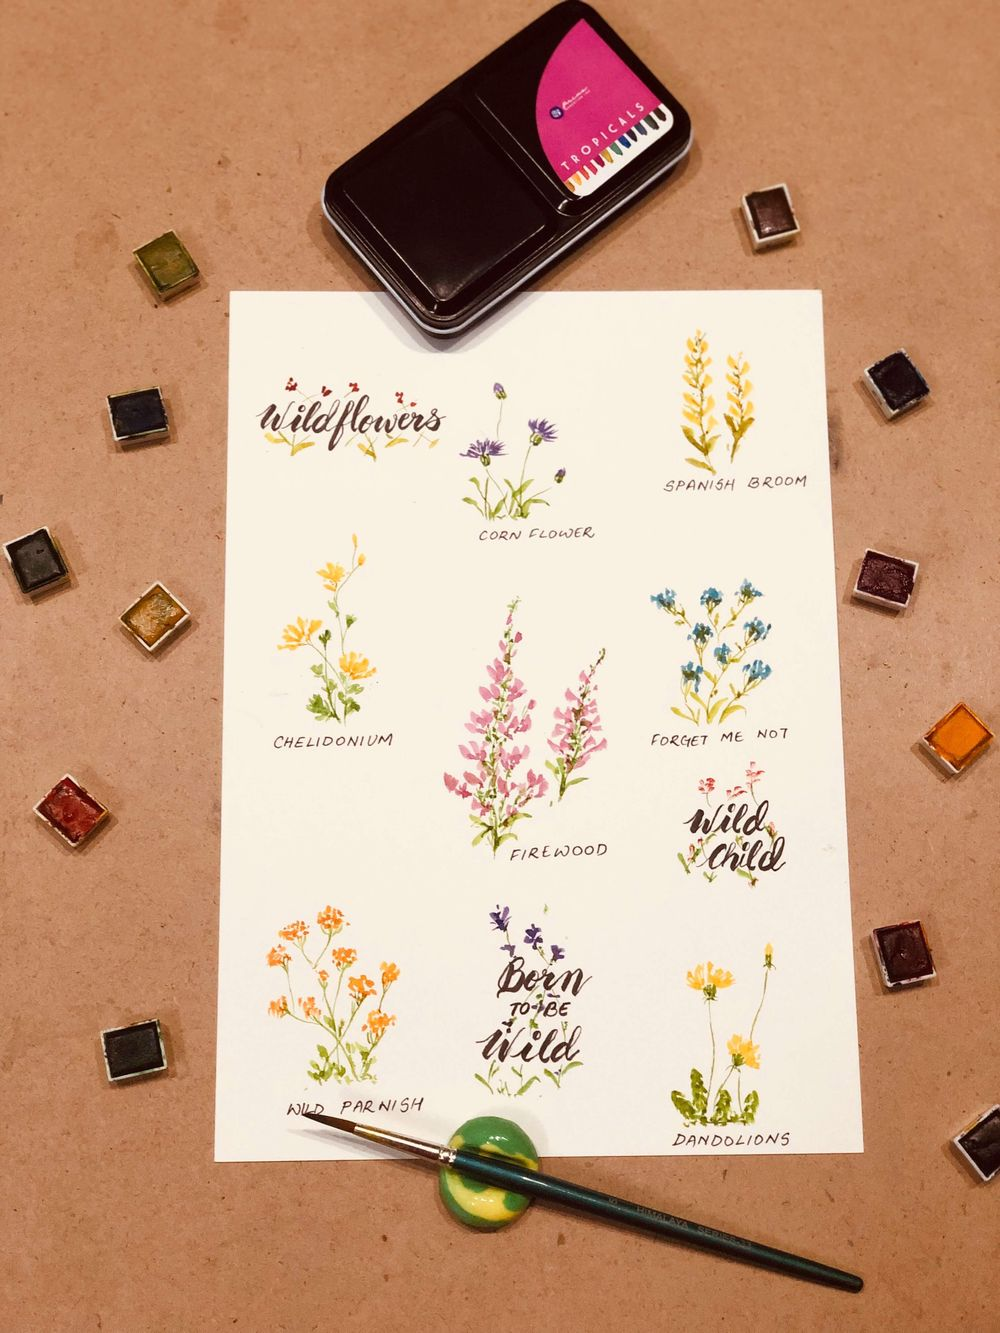 Born to be Wild - Wildflowers in Watercolours - image 1 - student project